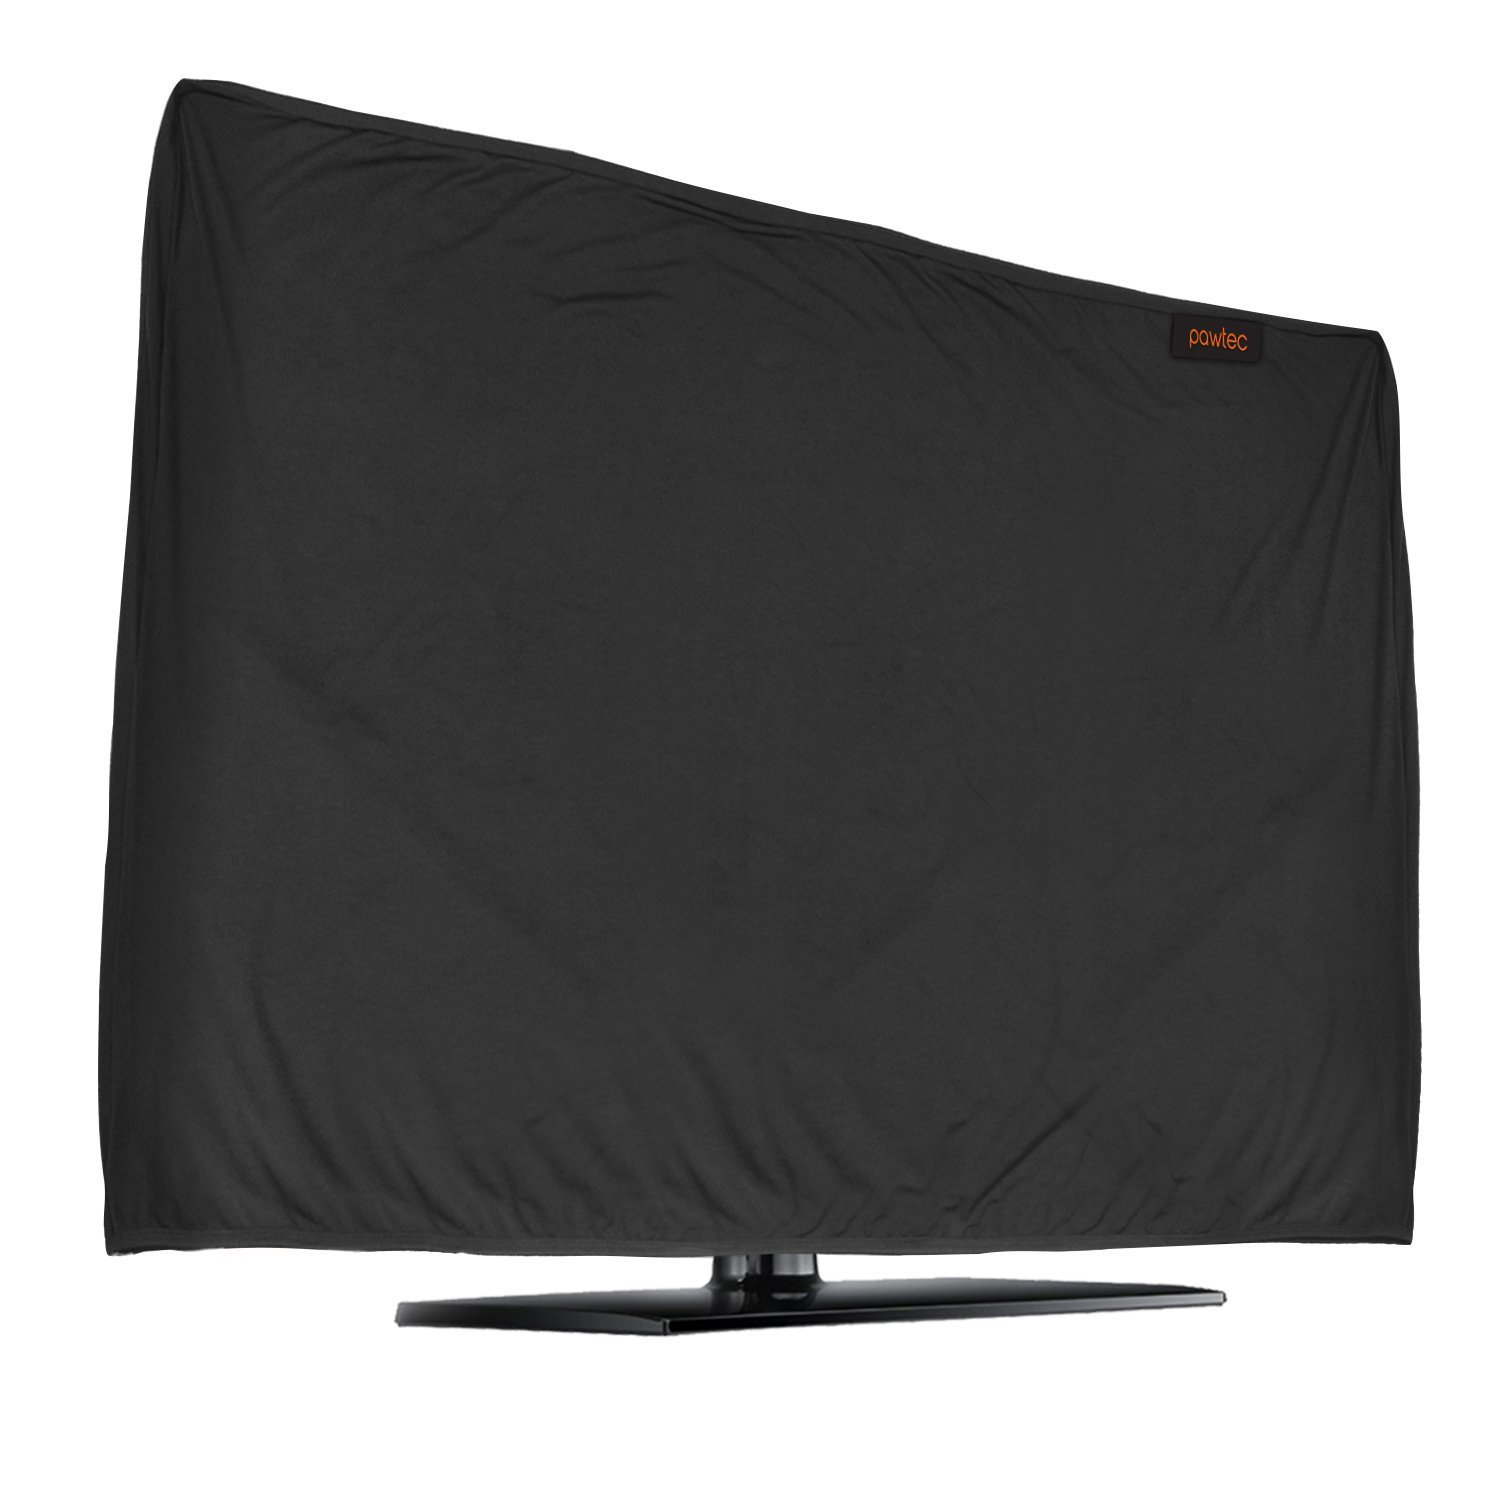 Lightweight Flat Screen TV Cover - Full Body Stretchable Lycra Protection Sleeve - Fits 65'' LED, OLED, LCD, and Plasma Televisions (65 inch)